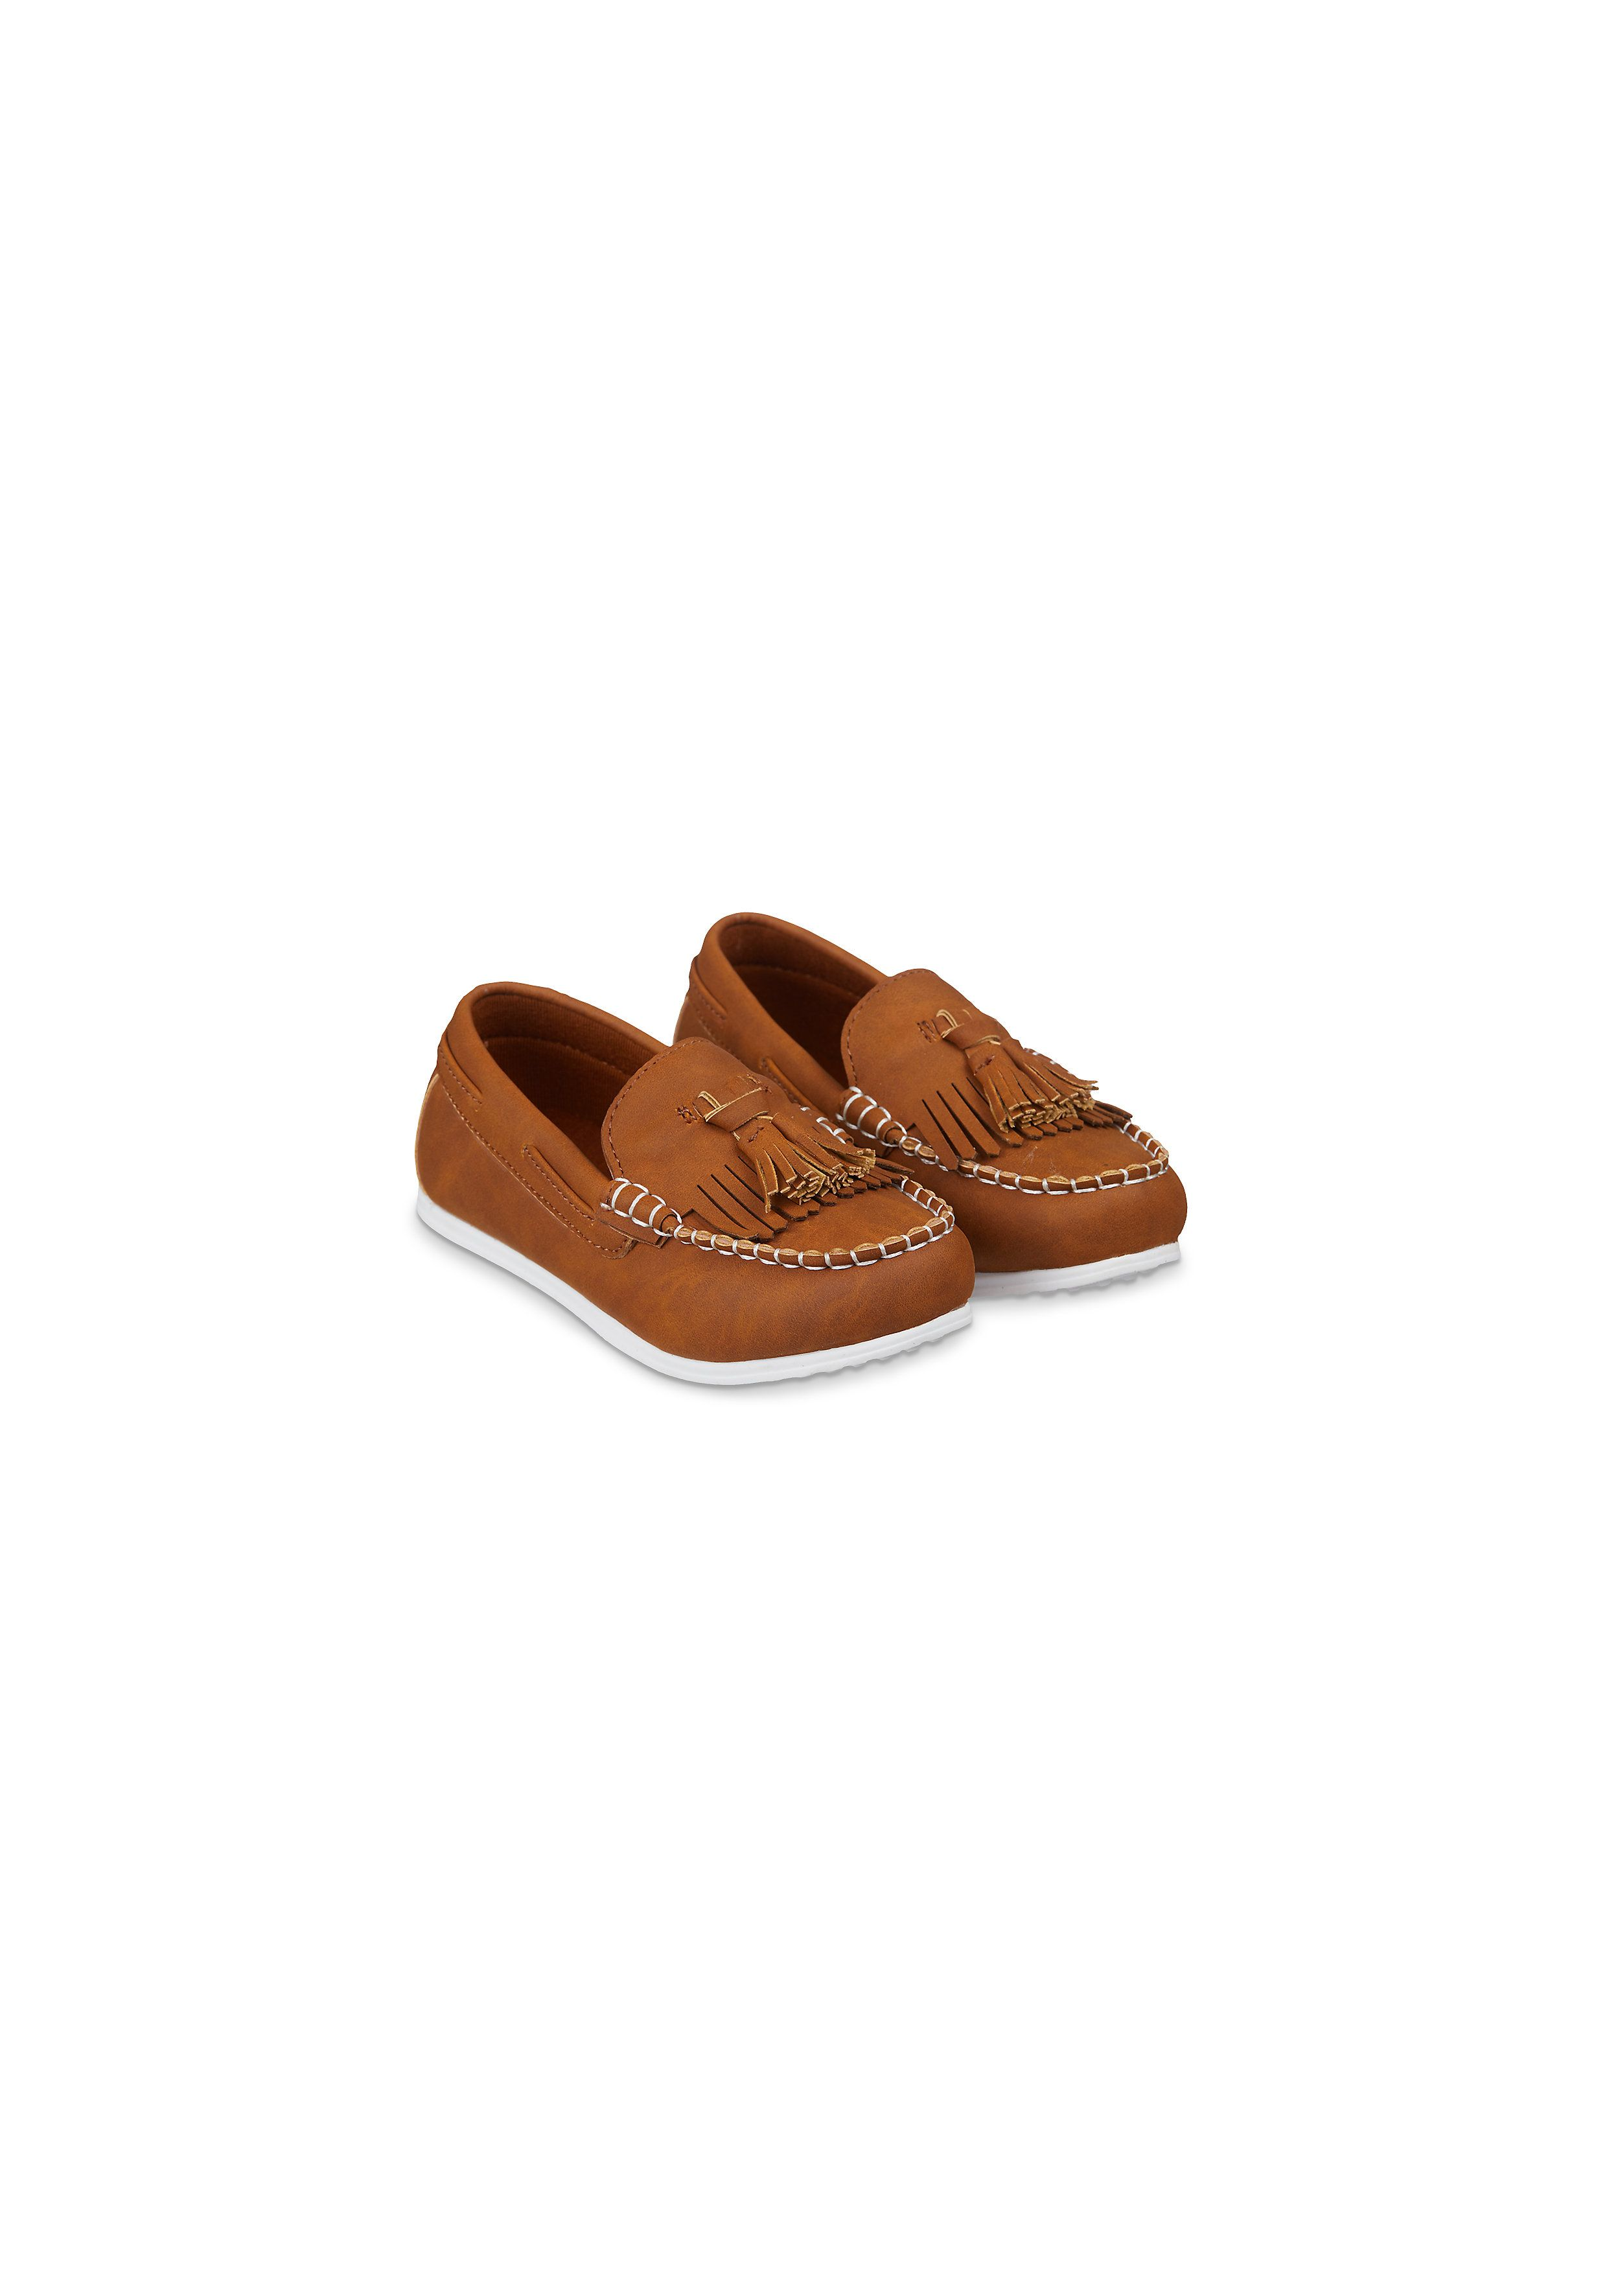 Mothercare   Boys Tan Tassel Loafer Shoes - Tan